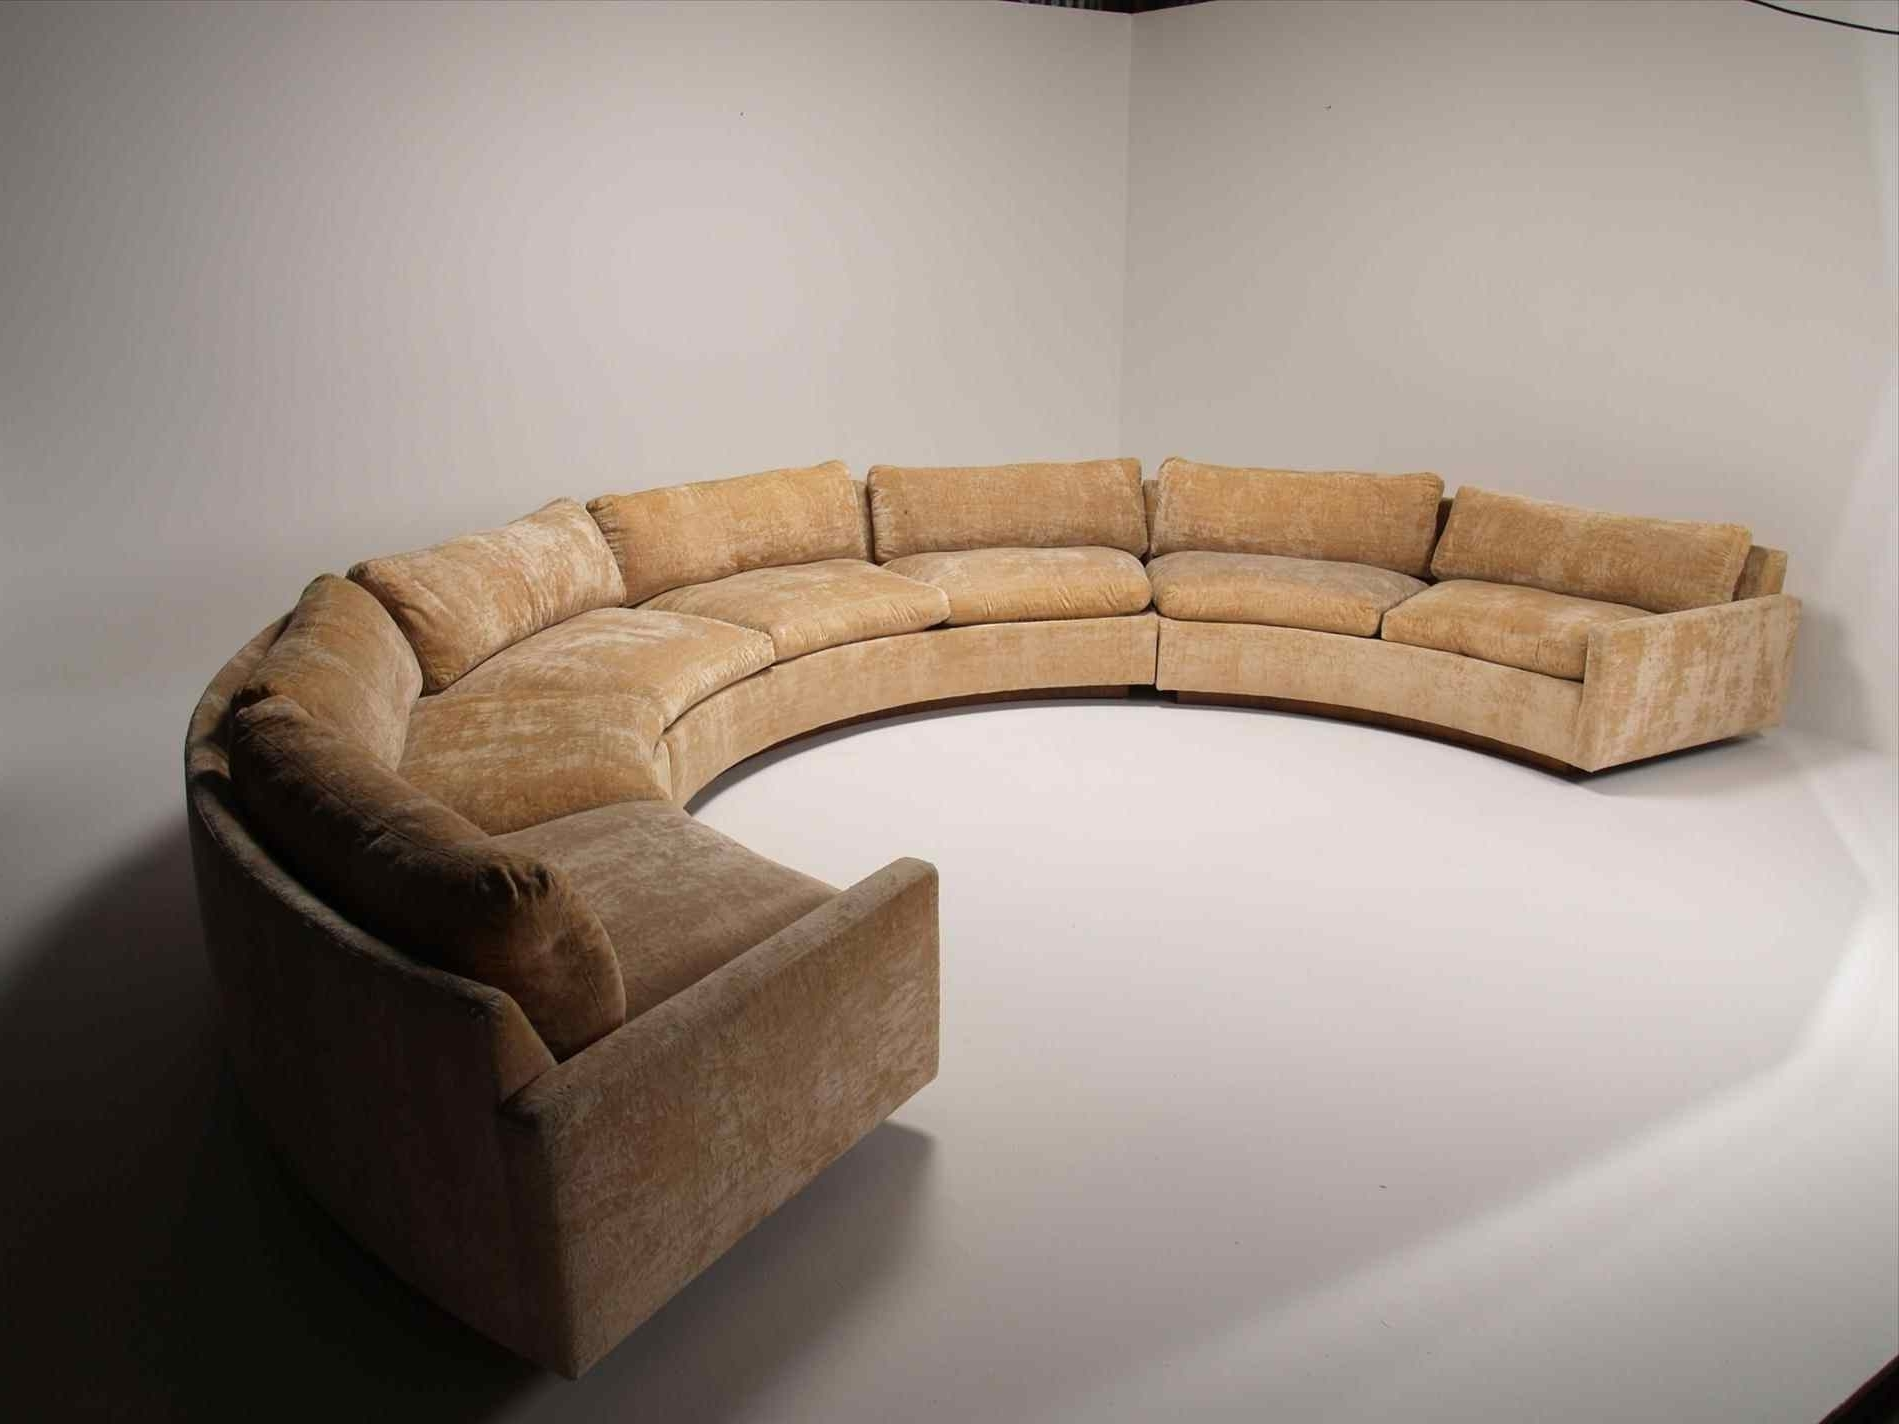 Couch : Ideas Sofascom Loveseat Circle Couch Best Sofas Ideas With Regard To Most Popular Circle Sofas (View 3 of 20)